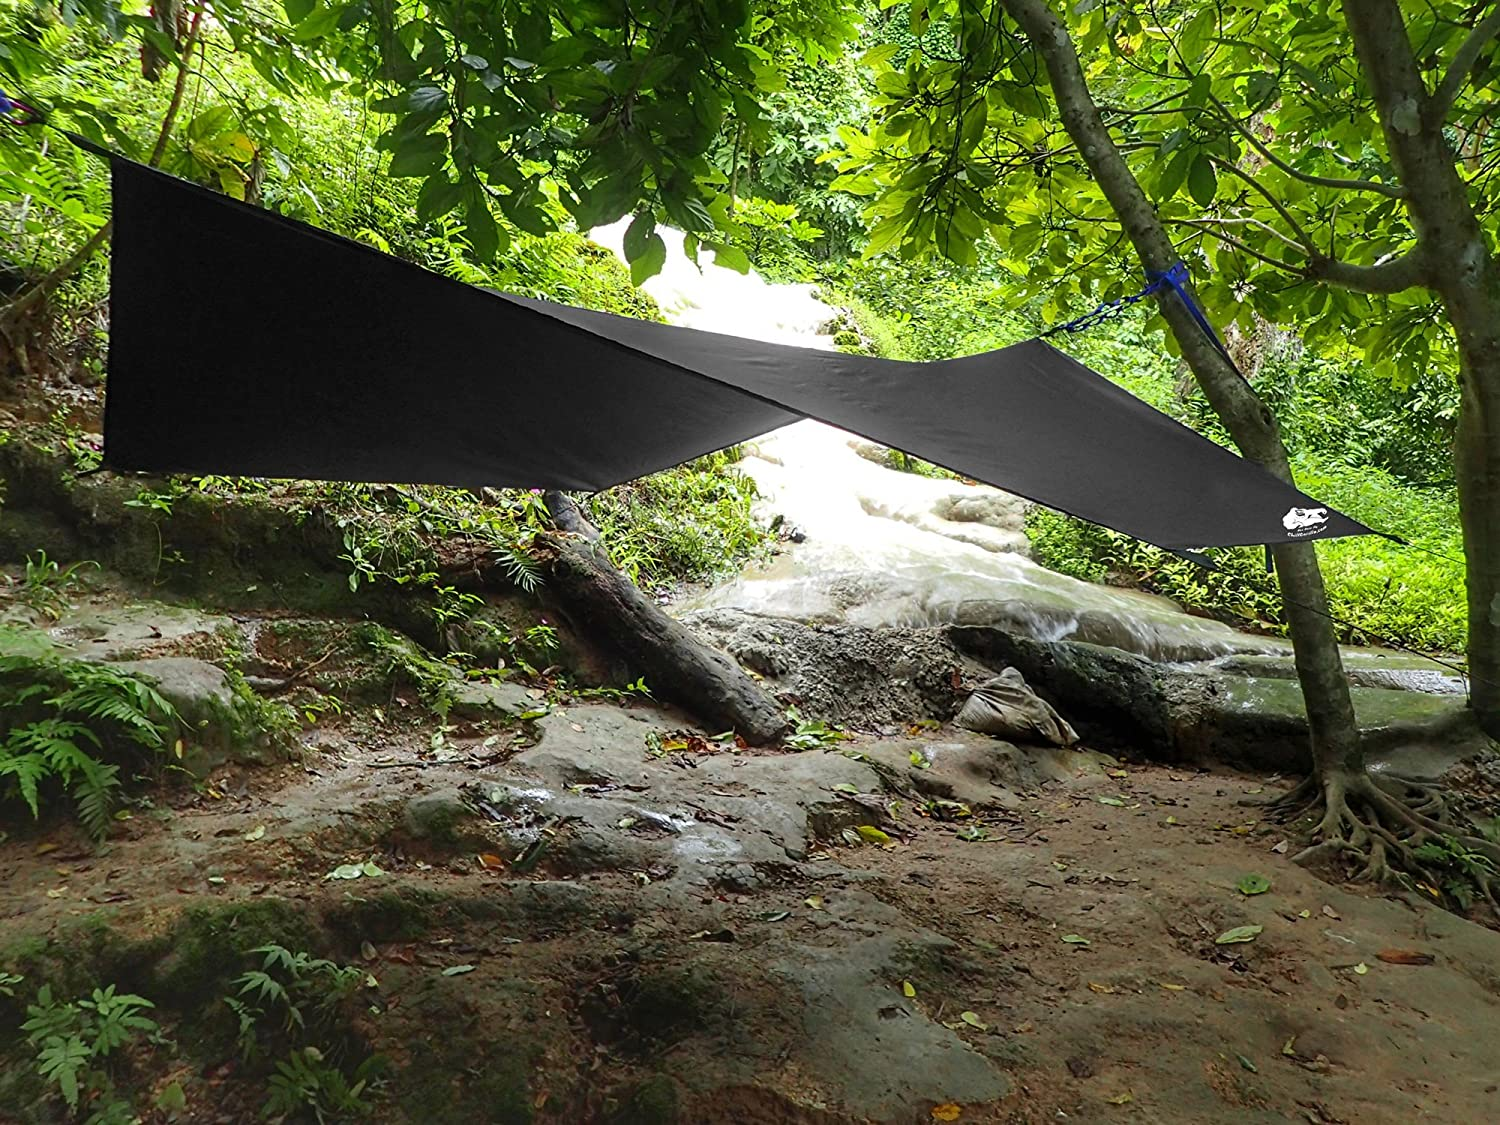 Camping Gear /& Accessories Chill Gorilla HEX Hammock Rain Fly Camping Tarp Ropes /& Tensioners Included Multiple Colors Ripstop Nylon Perfect Hammock Tent Stakes